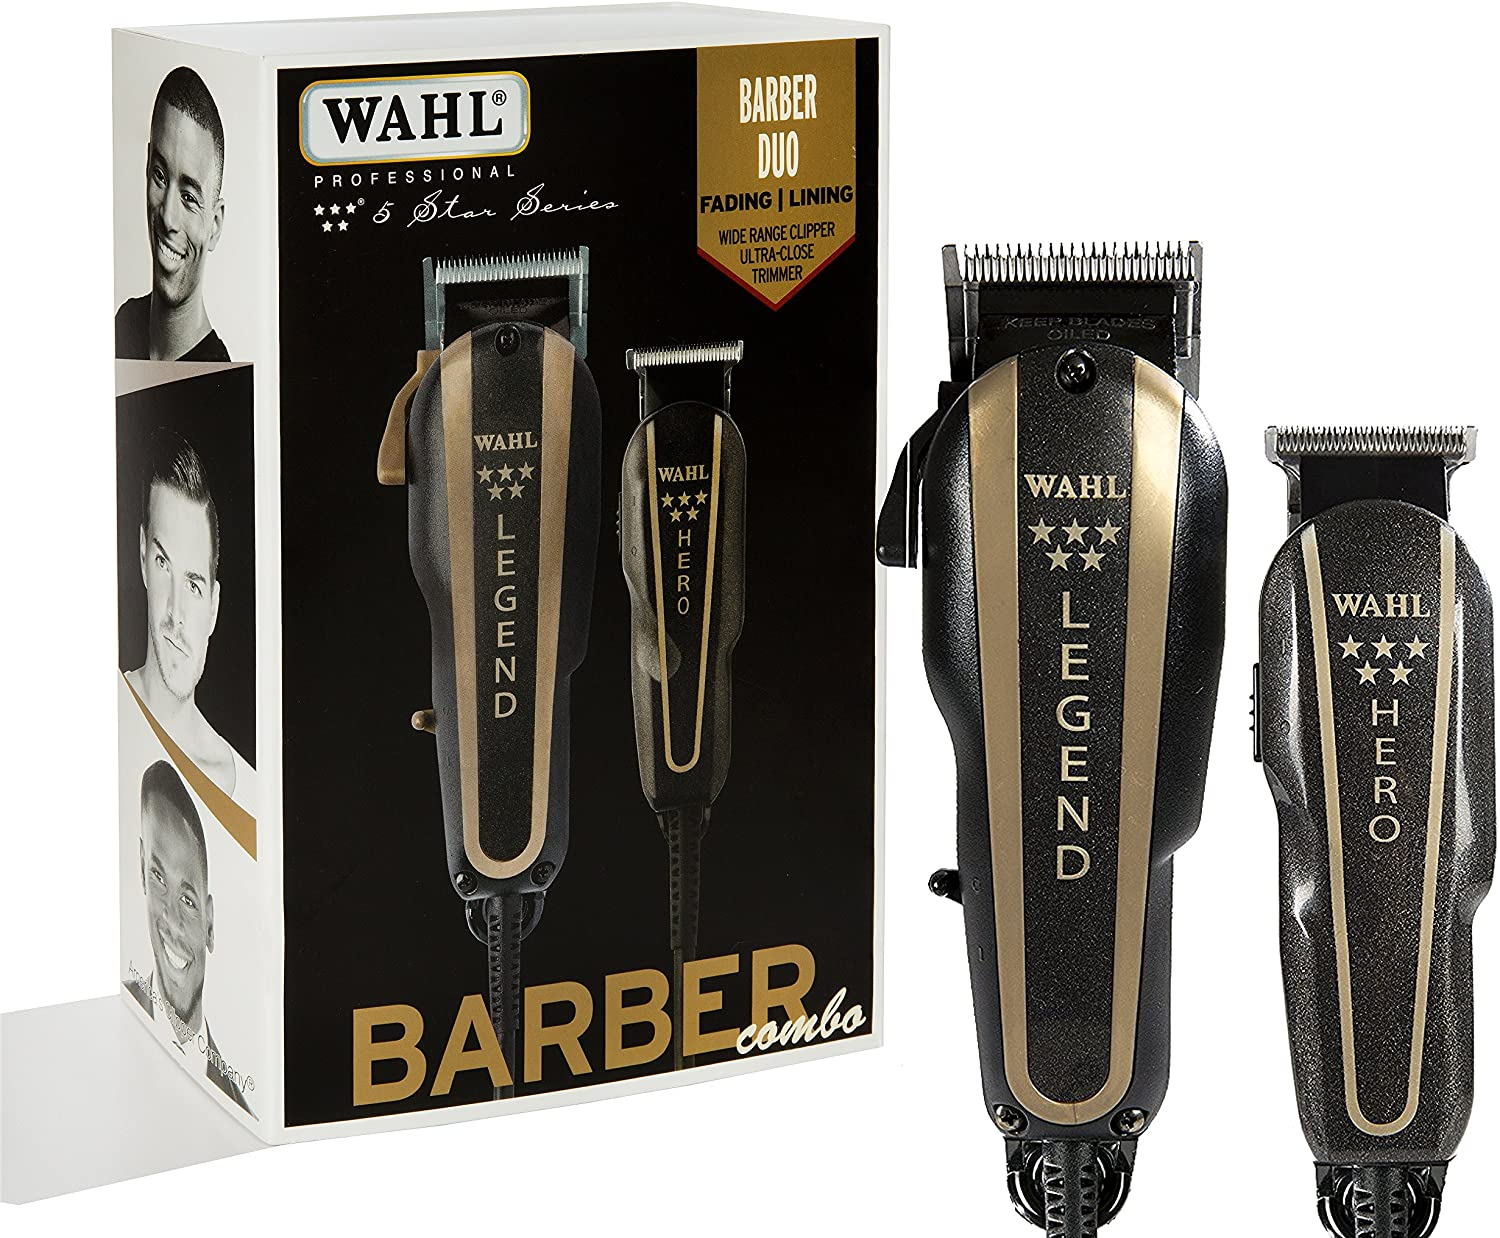 WAHL Professional 5 Star Barber Combo - Model # 8180